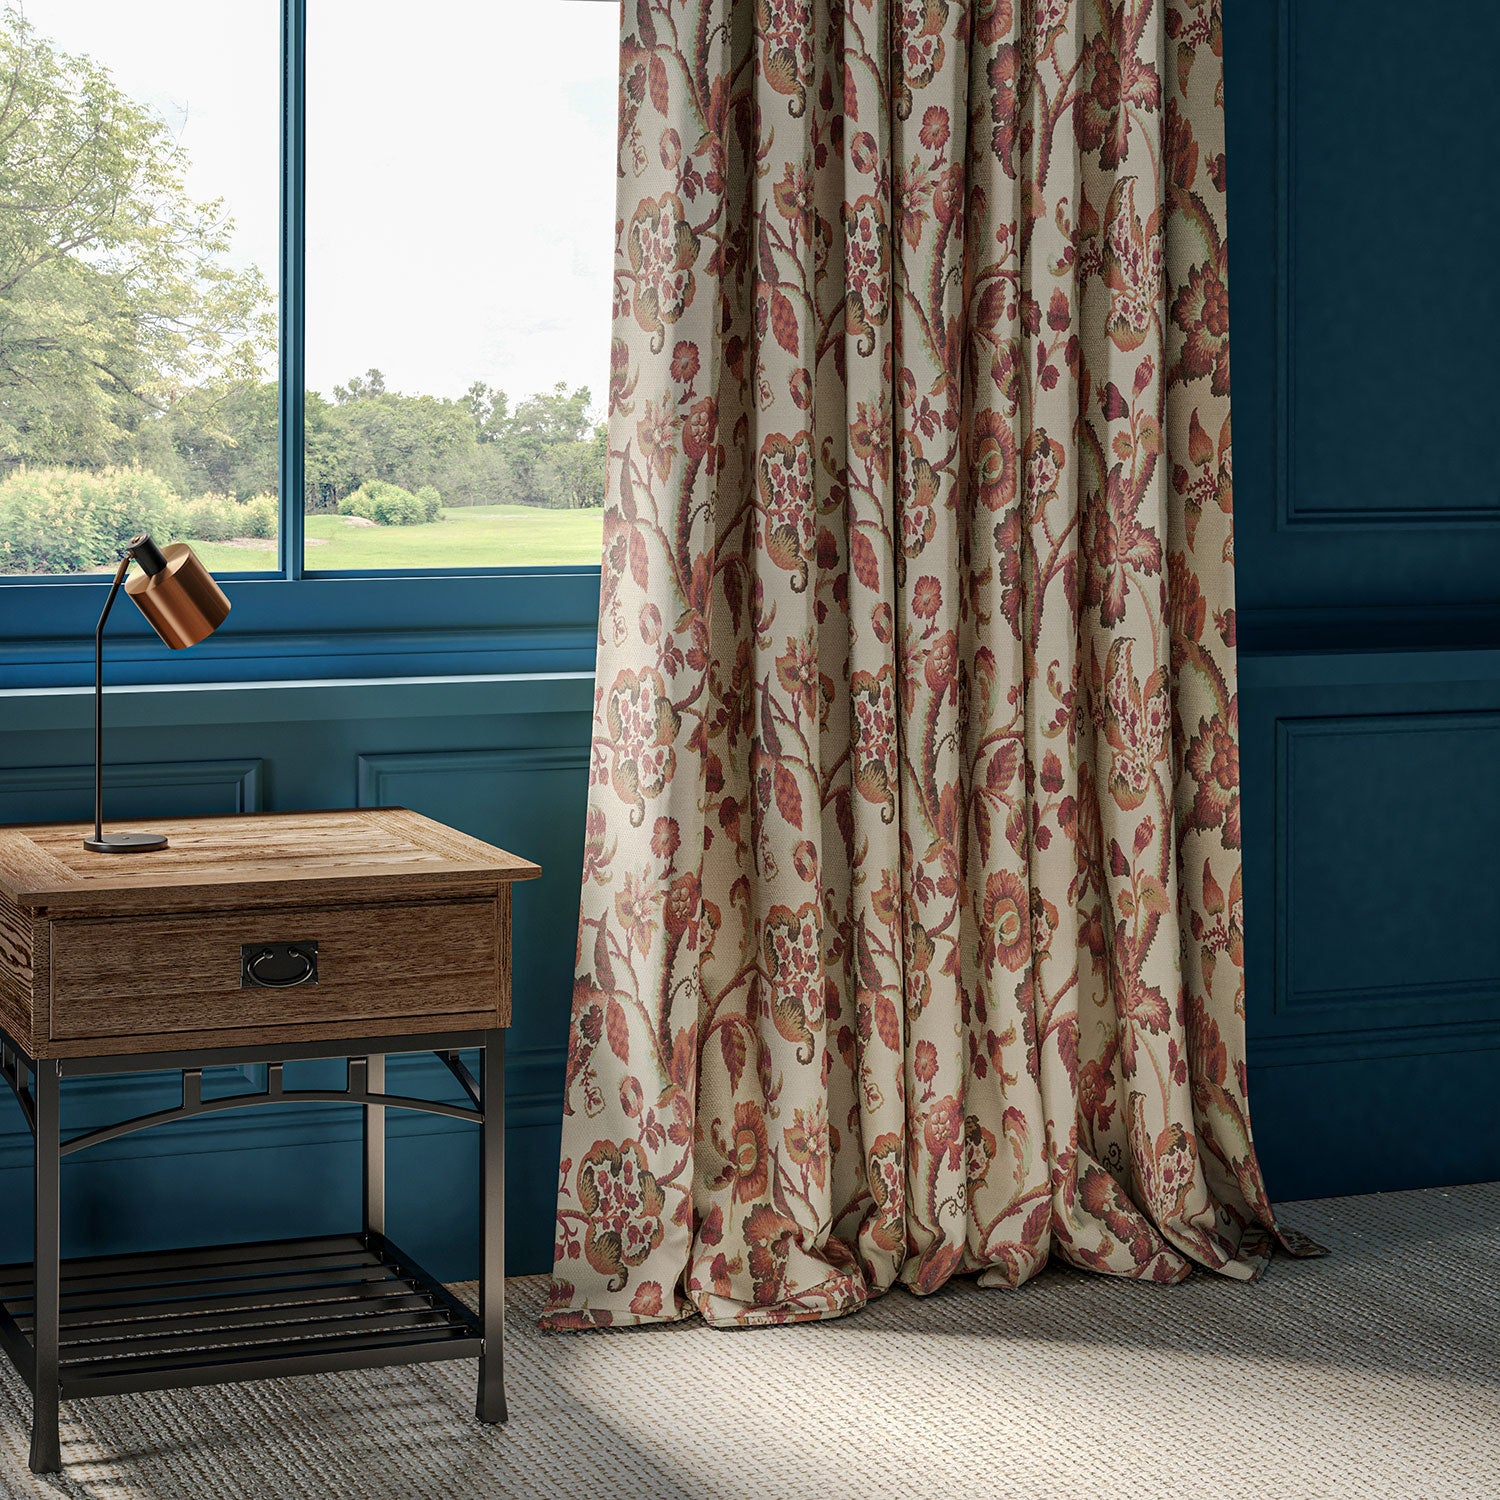 Curtains in Haryana fabric colourway Jaipur. Neutral fabric with red vine and floral design.